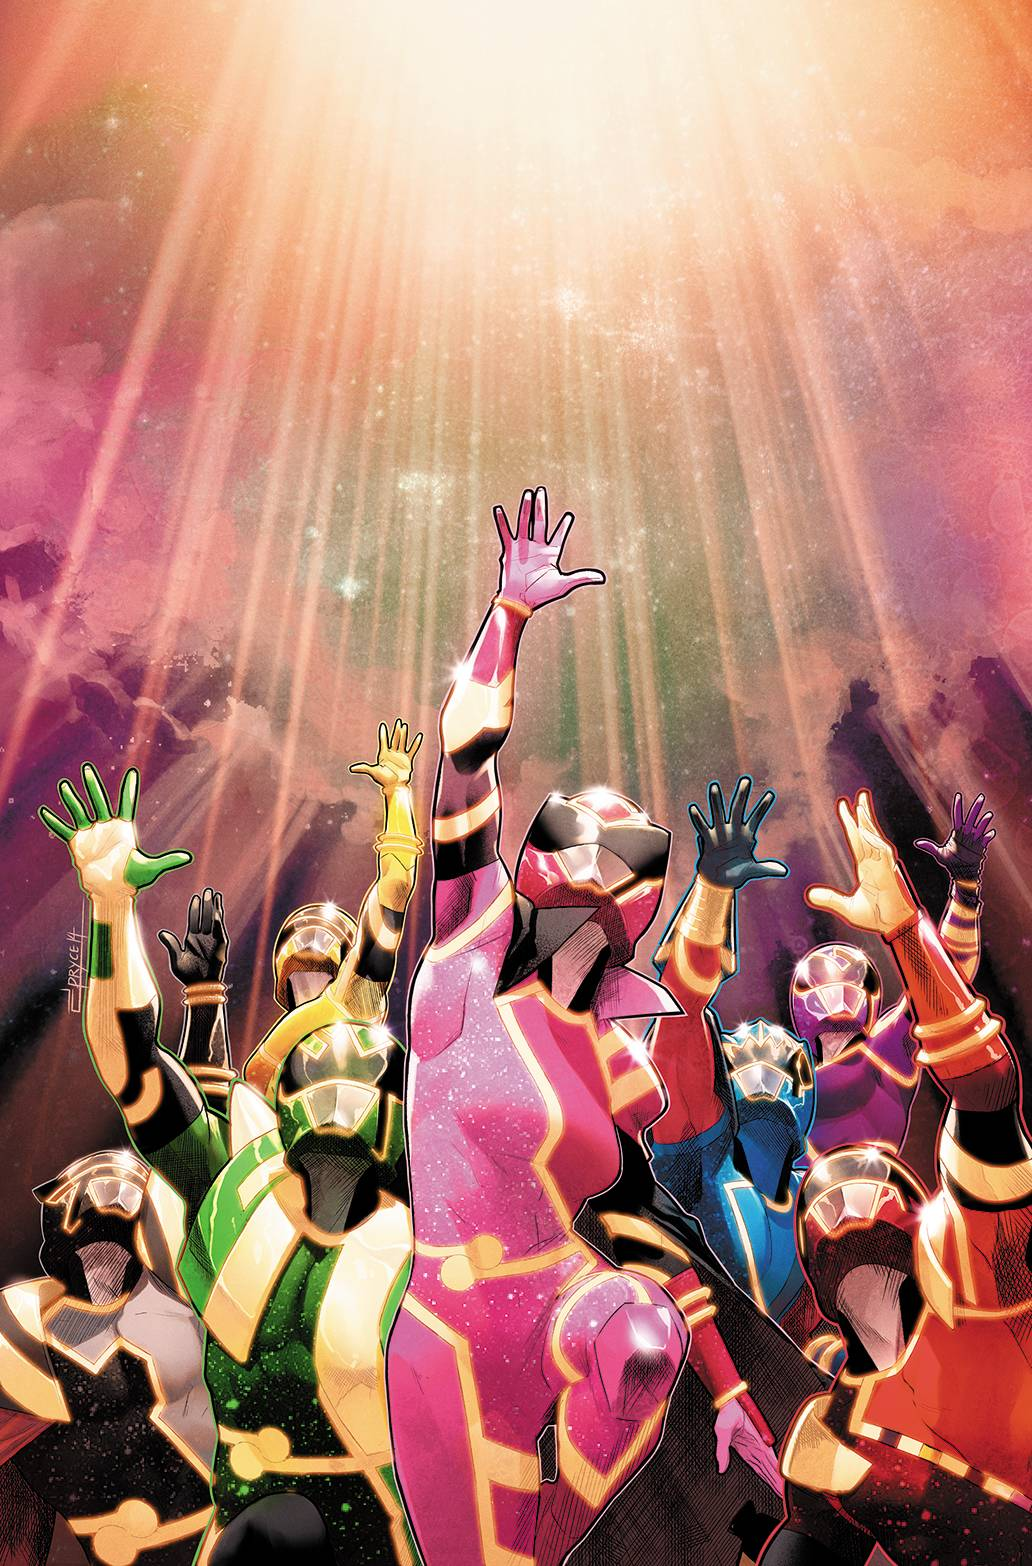 MIGHTY MORPHIN POWER RANGERS 39 MAIN.jpg